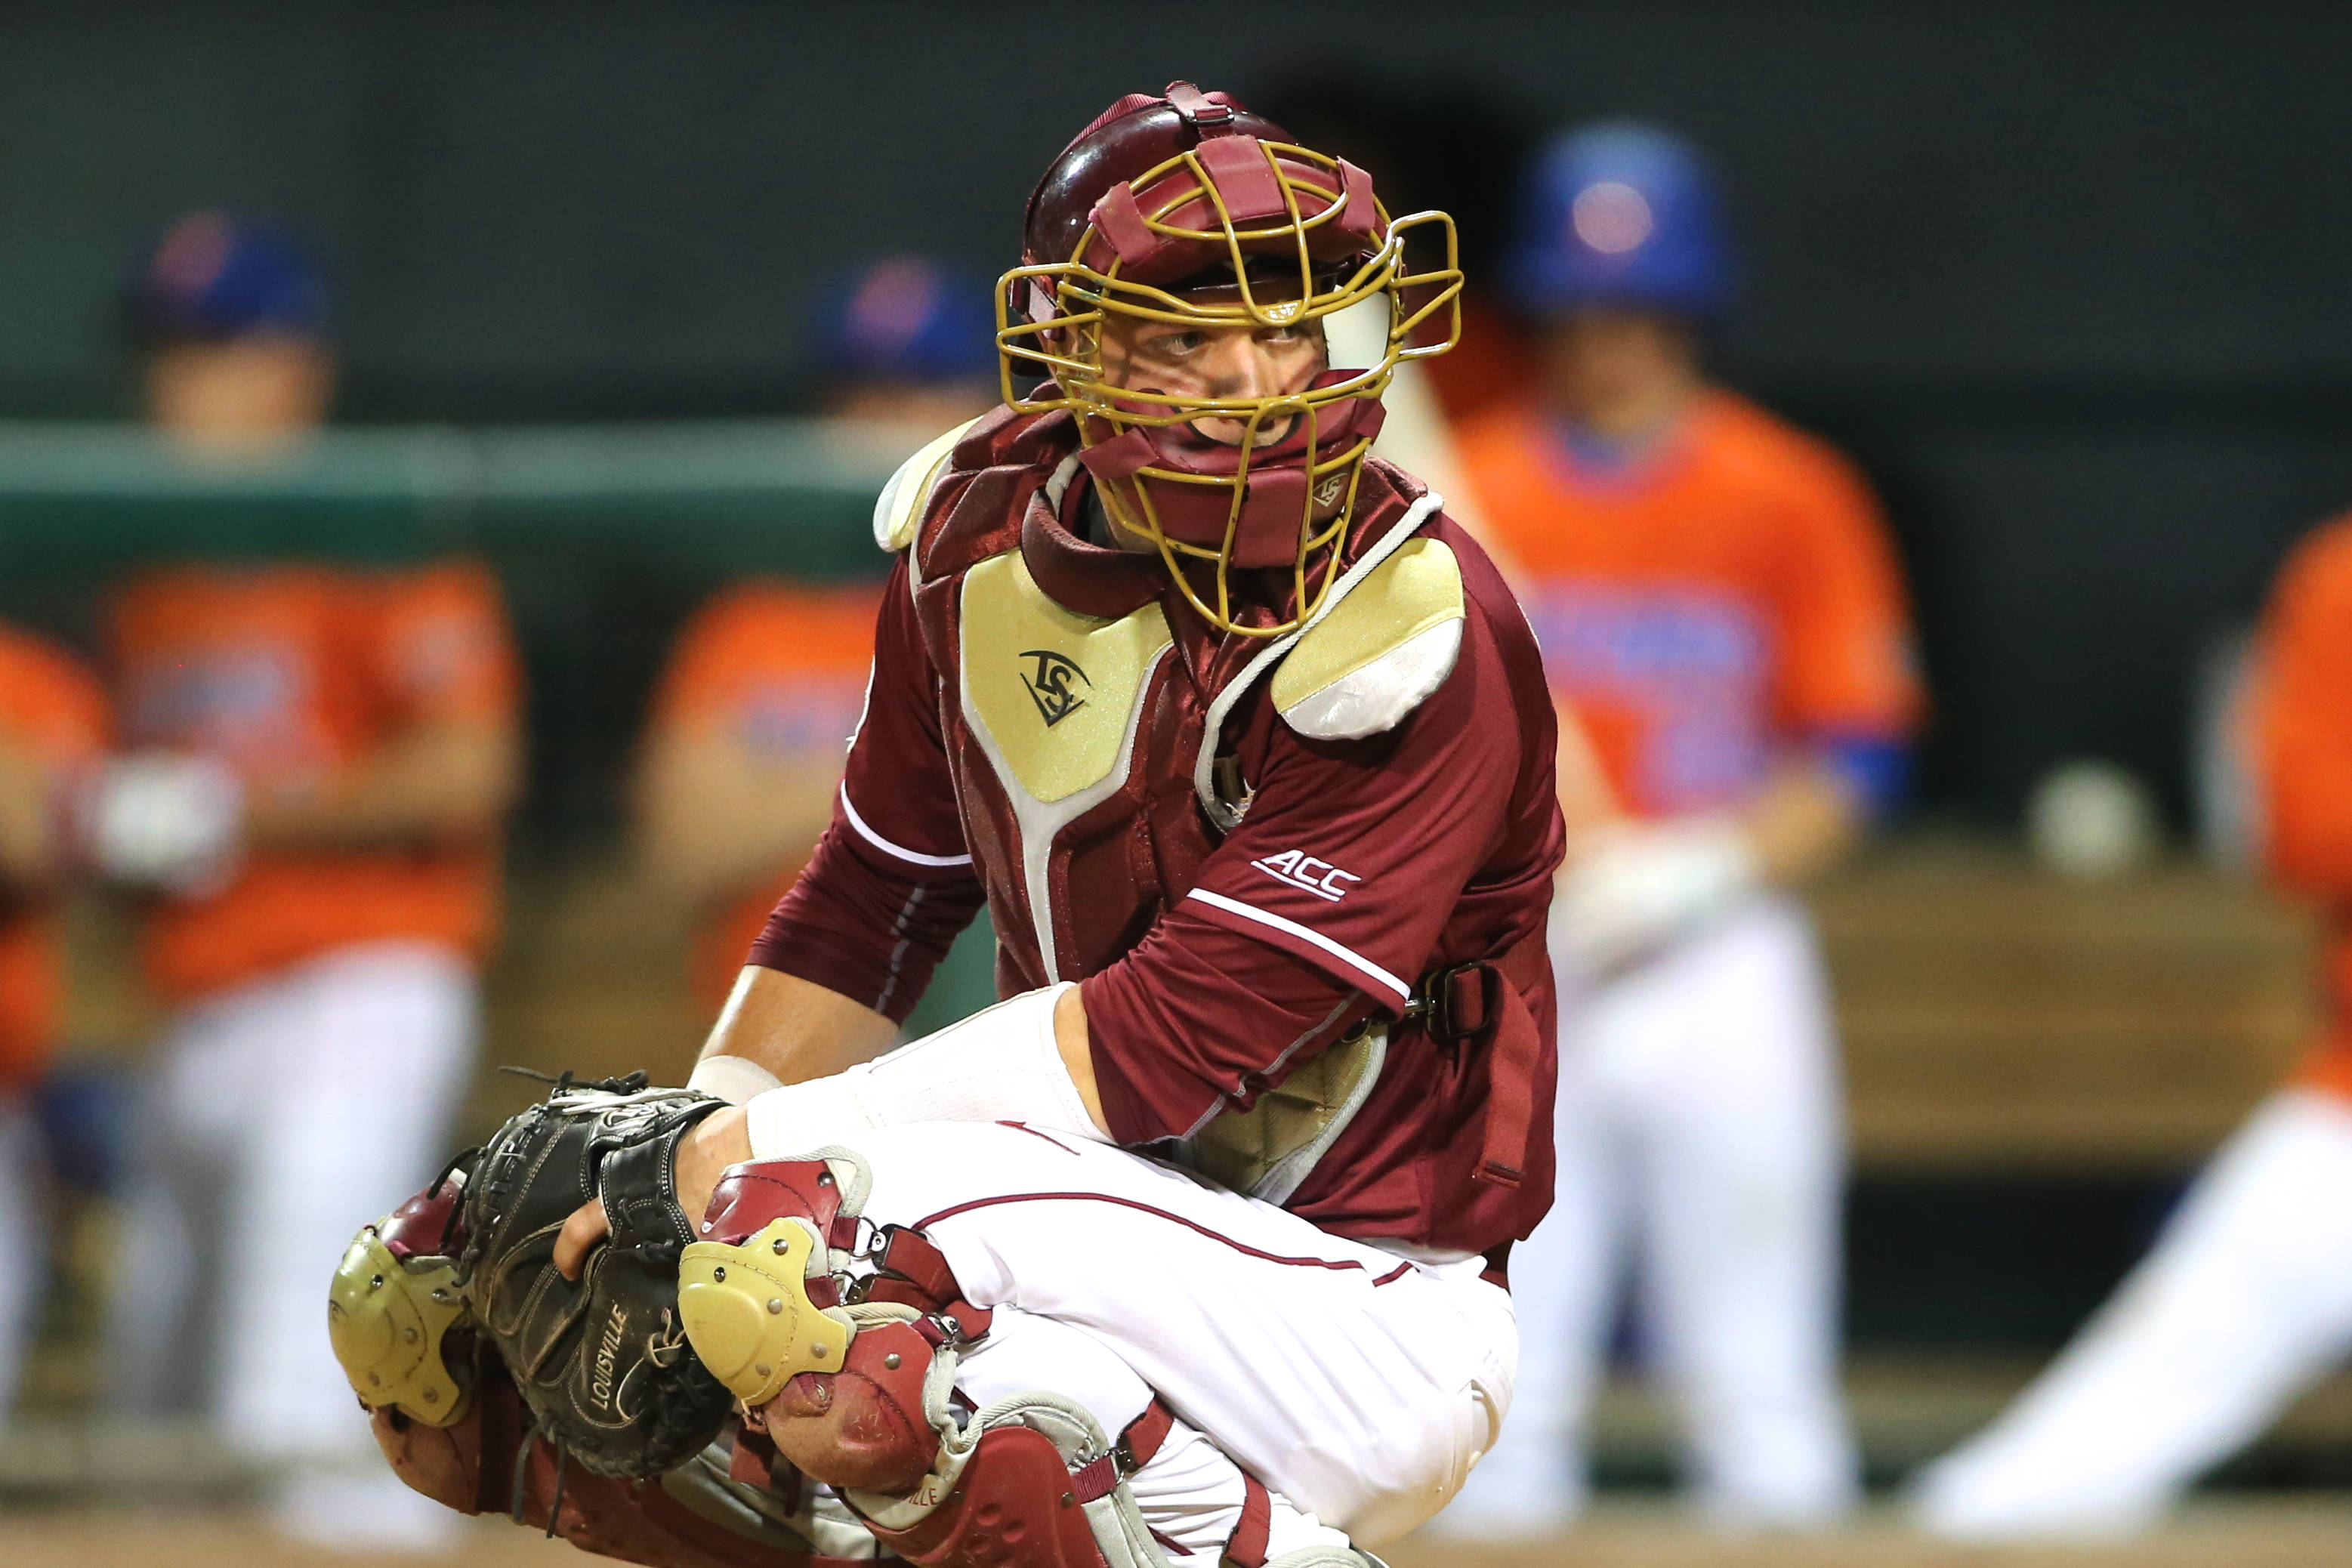 Florida State vs Florida – Baseball Grounds at Jacksonville